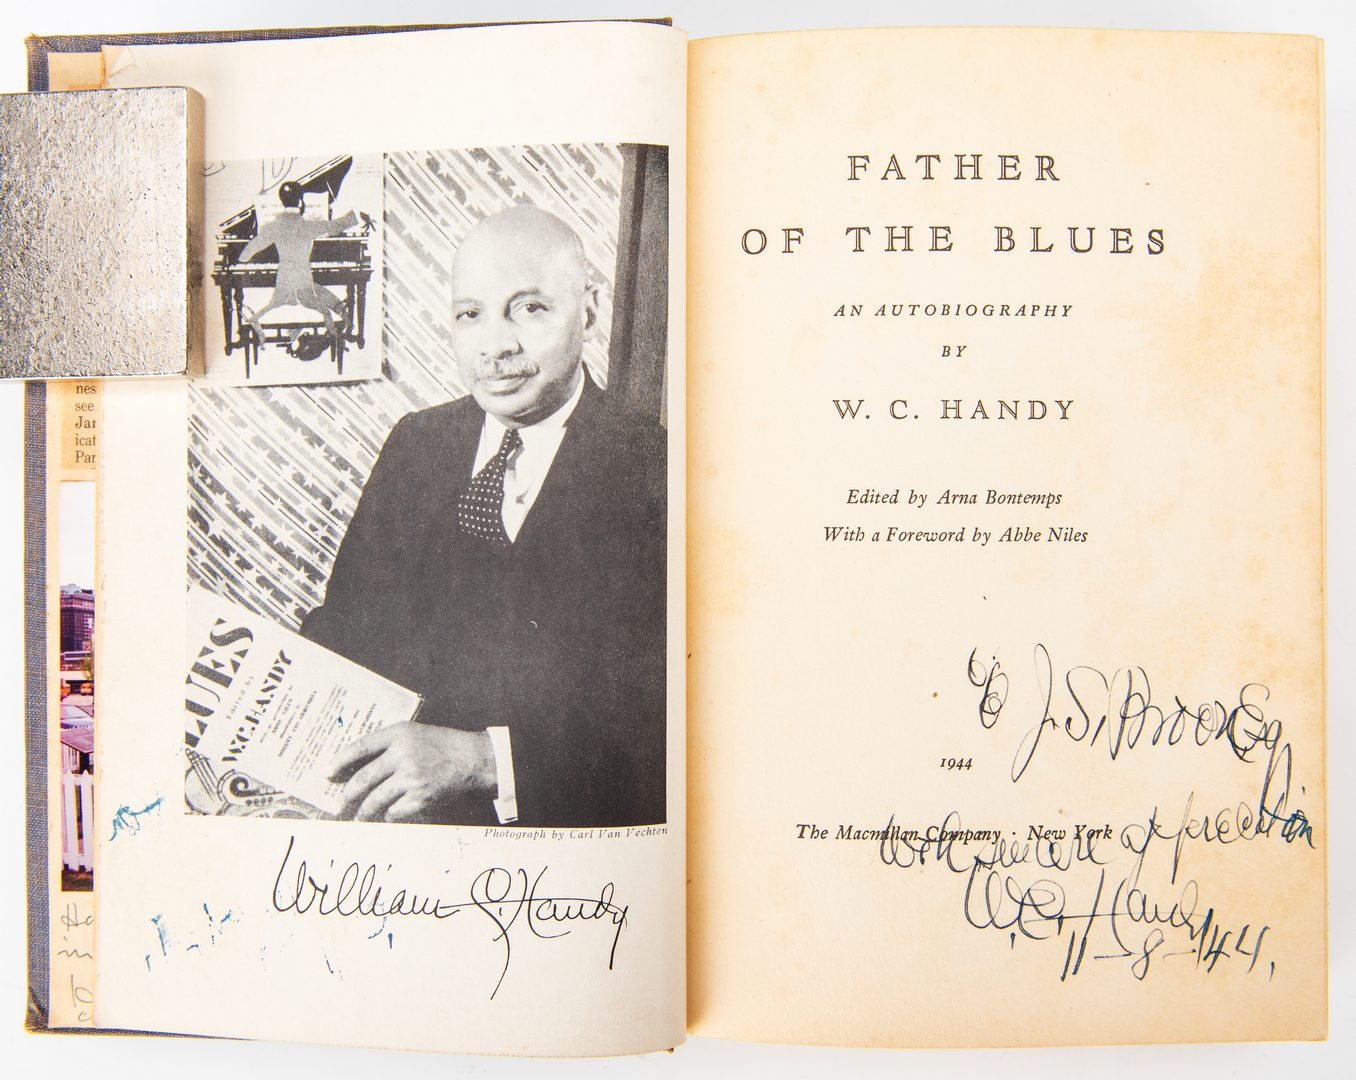 Lot 817: W. C. Handy, Father of the Blues Signed, 1944